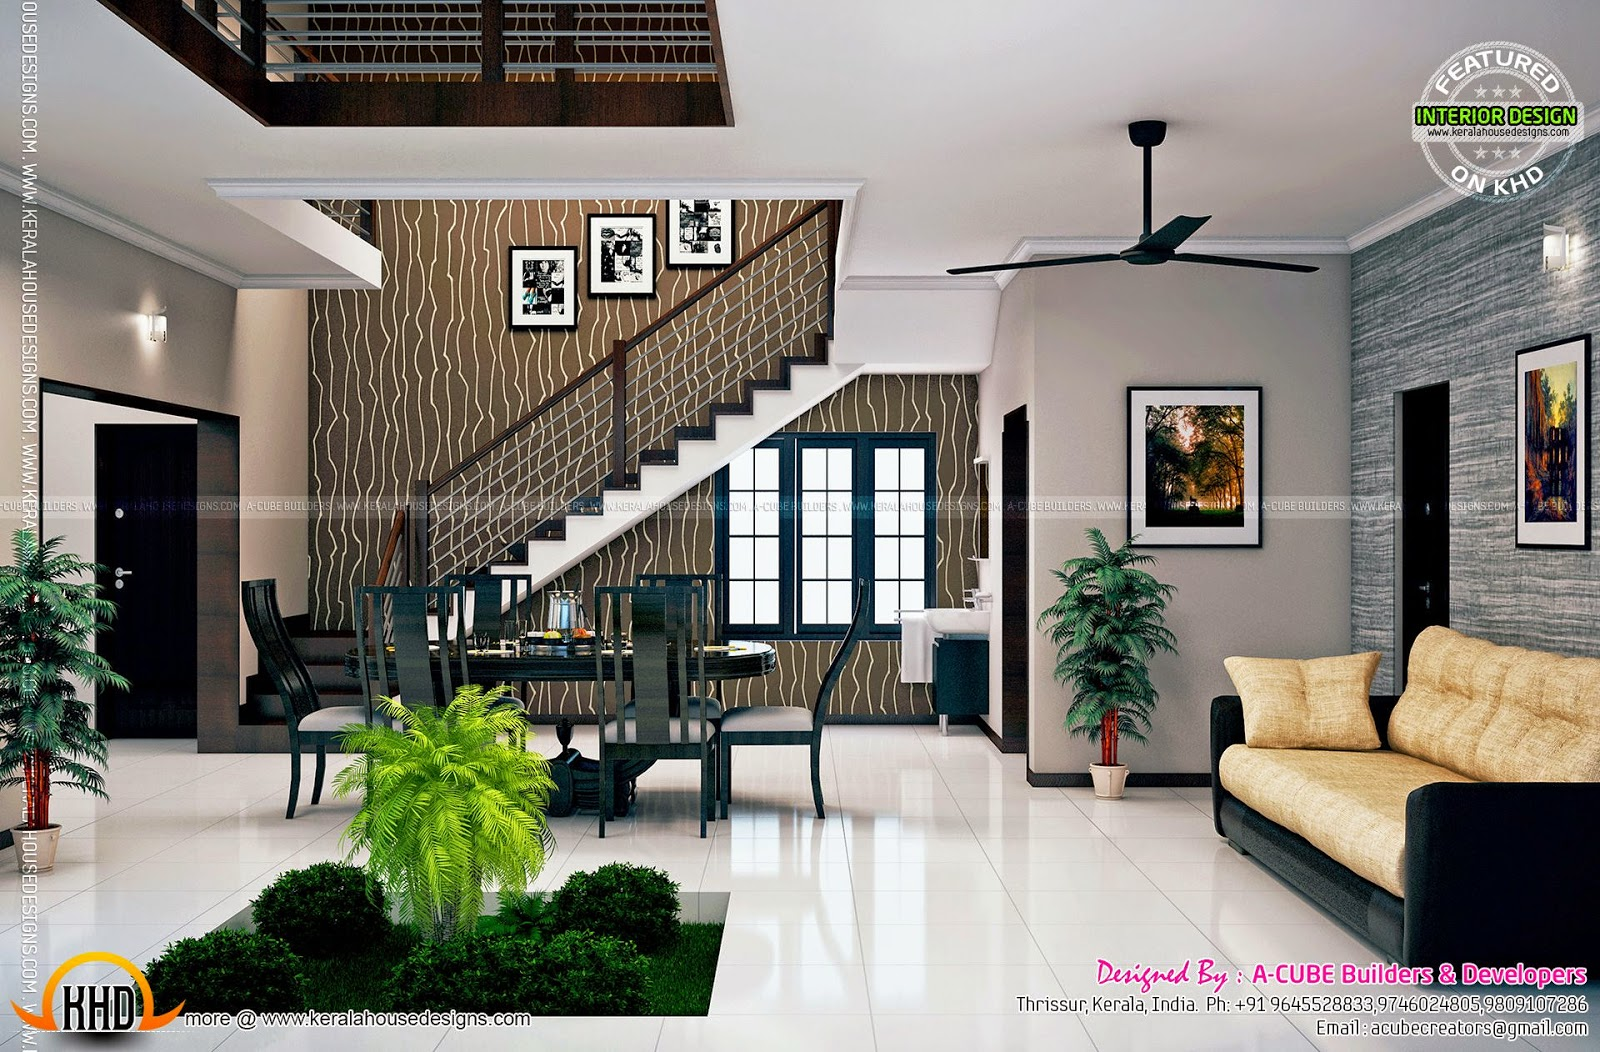 Kerala interior design ideas kerala home design and for Home design ideas